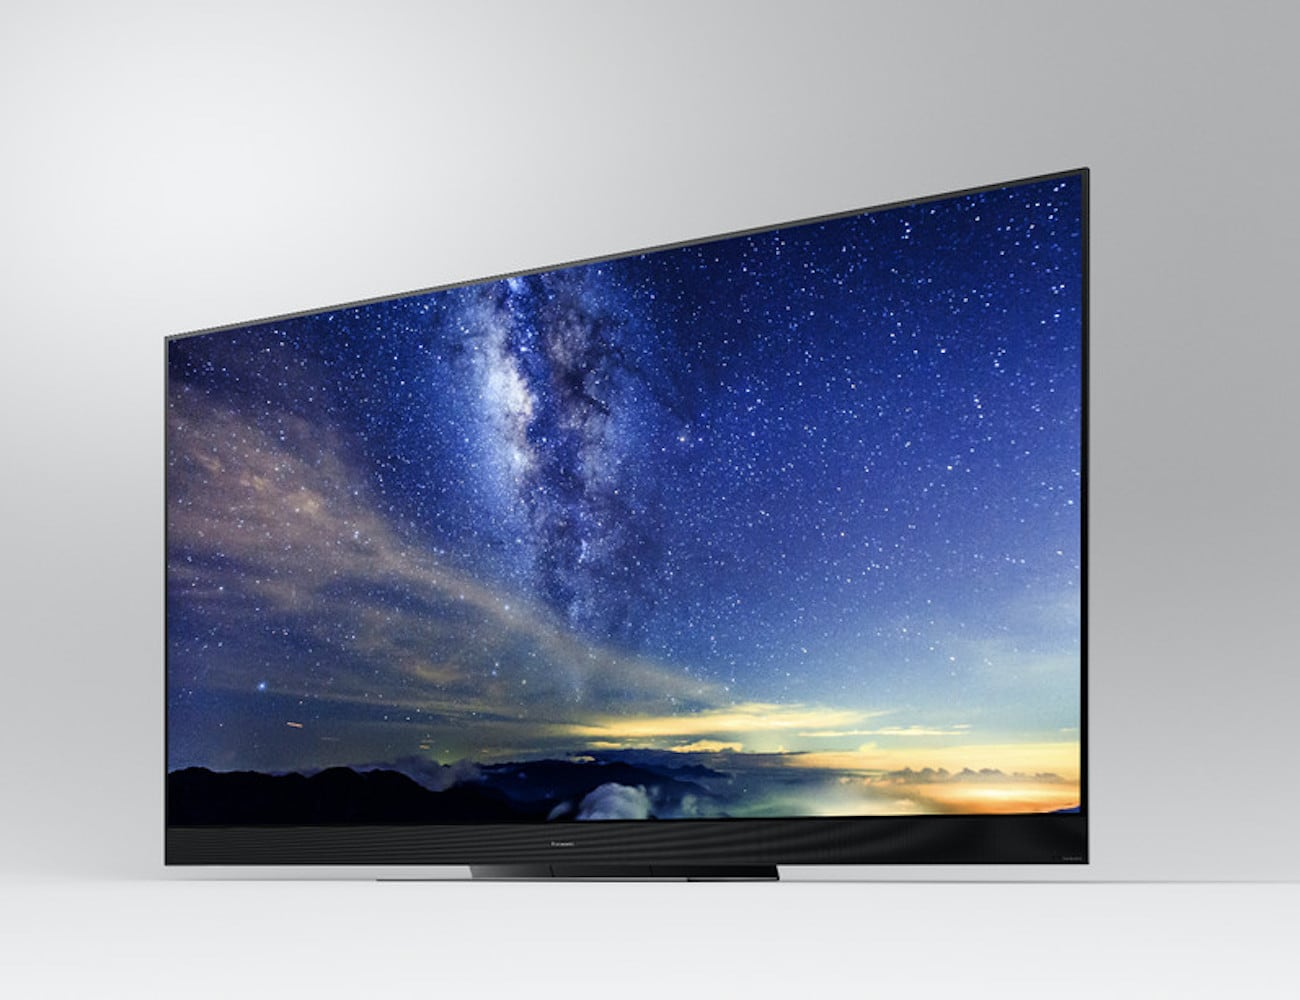 Panasonic GZ2000 4K OLED TV